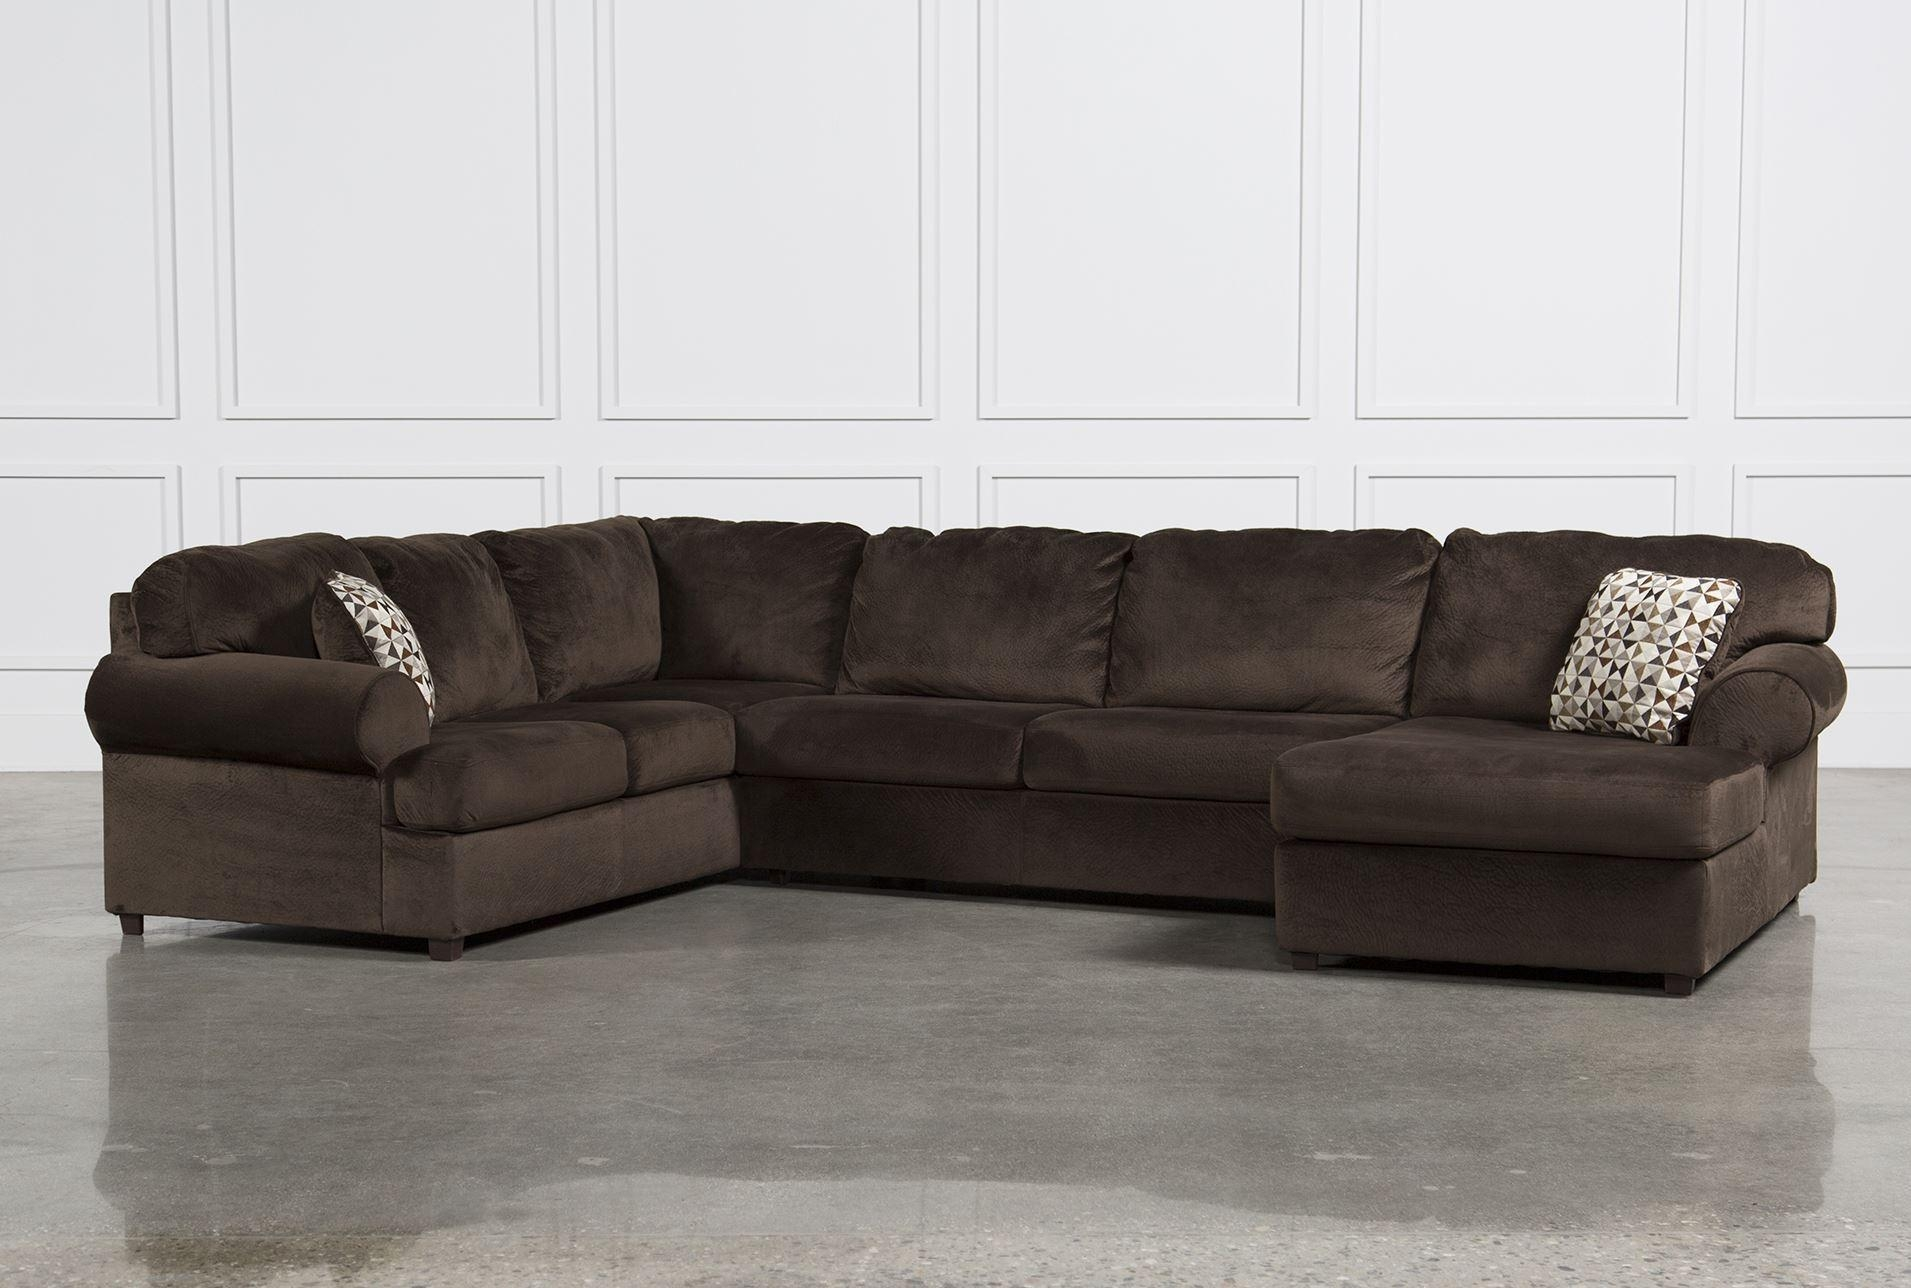 Sealy Living Room Furniture. Astonishing Plush Sectional Sofas 80 For Your Sealy Posturepedic In  Leather Image 1 20 Inspirations Sofa Ideas